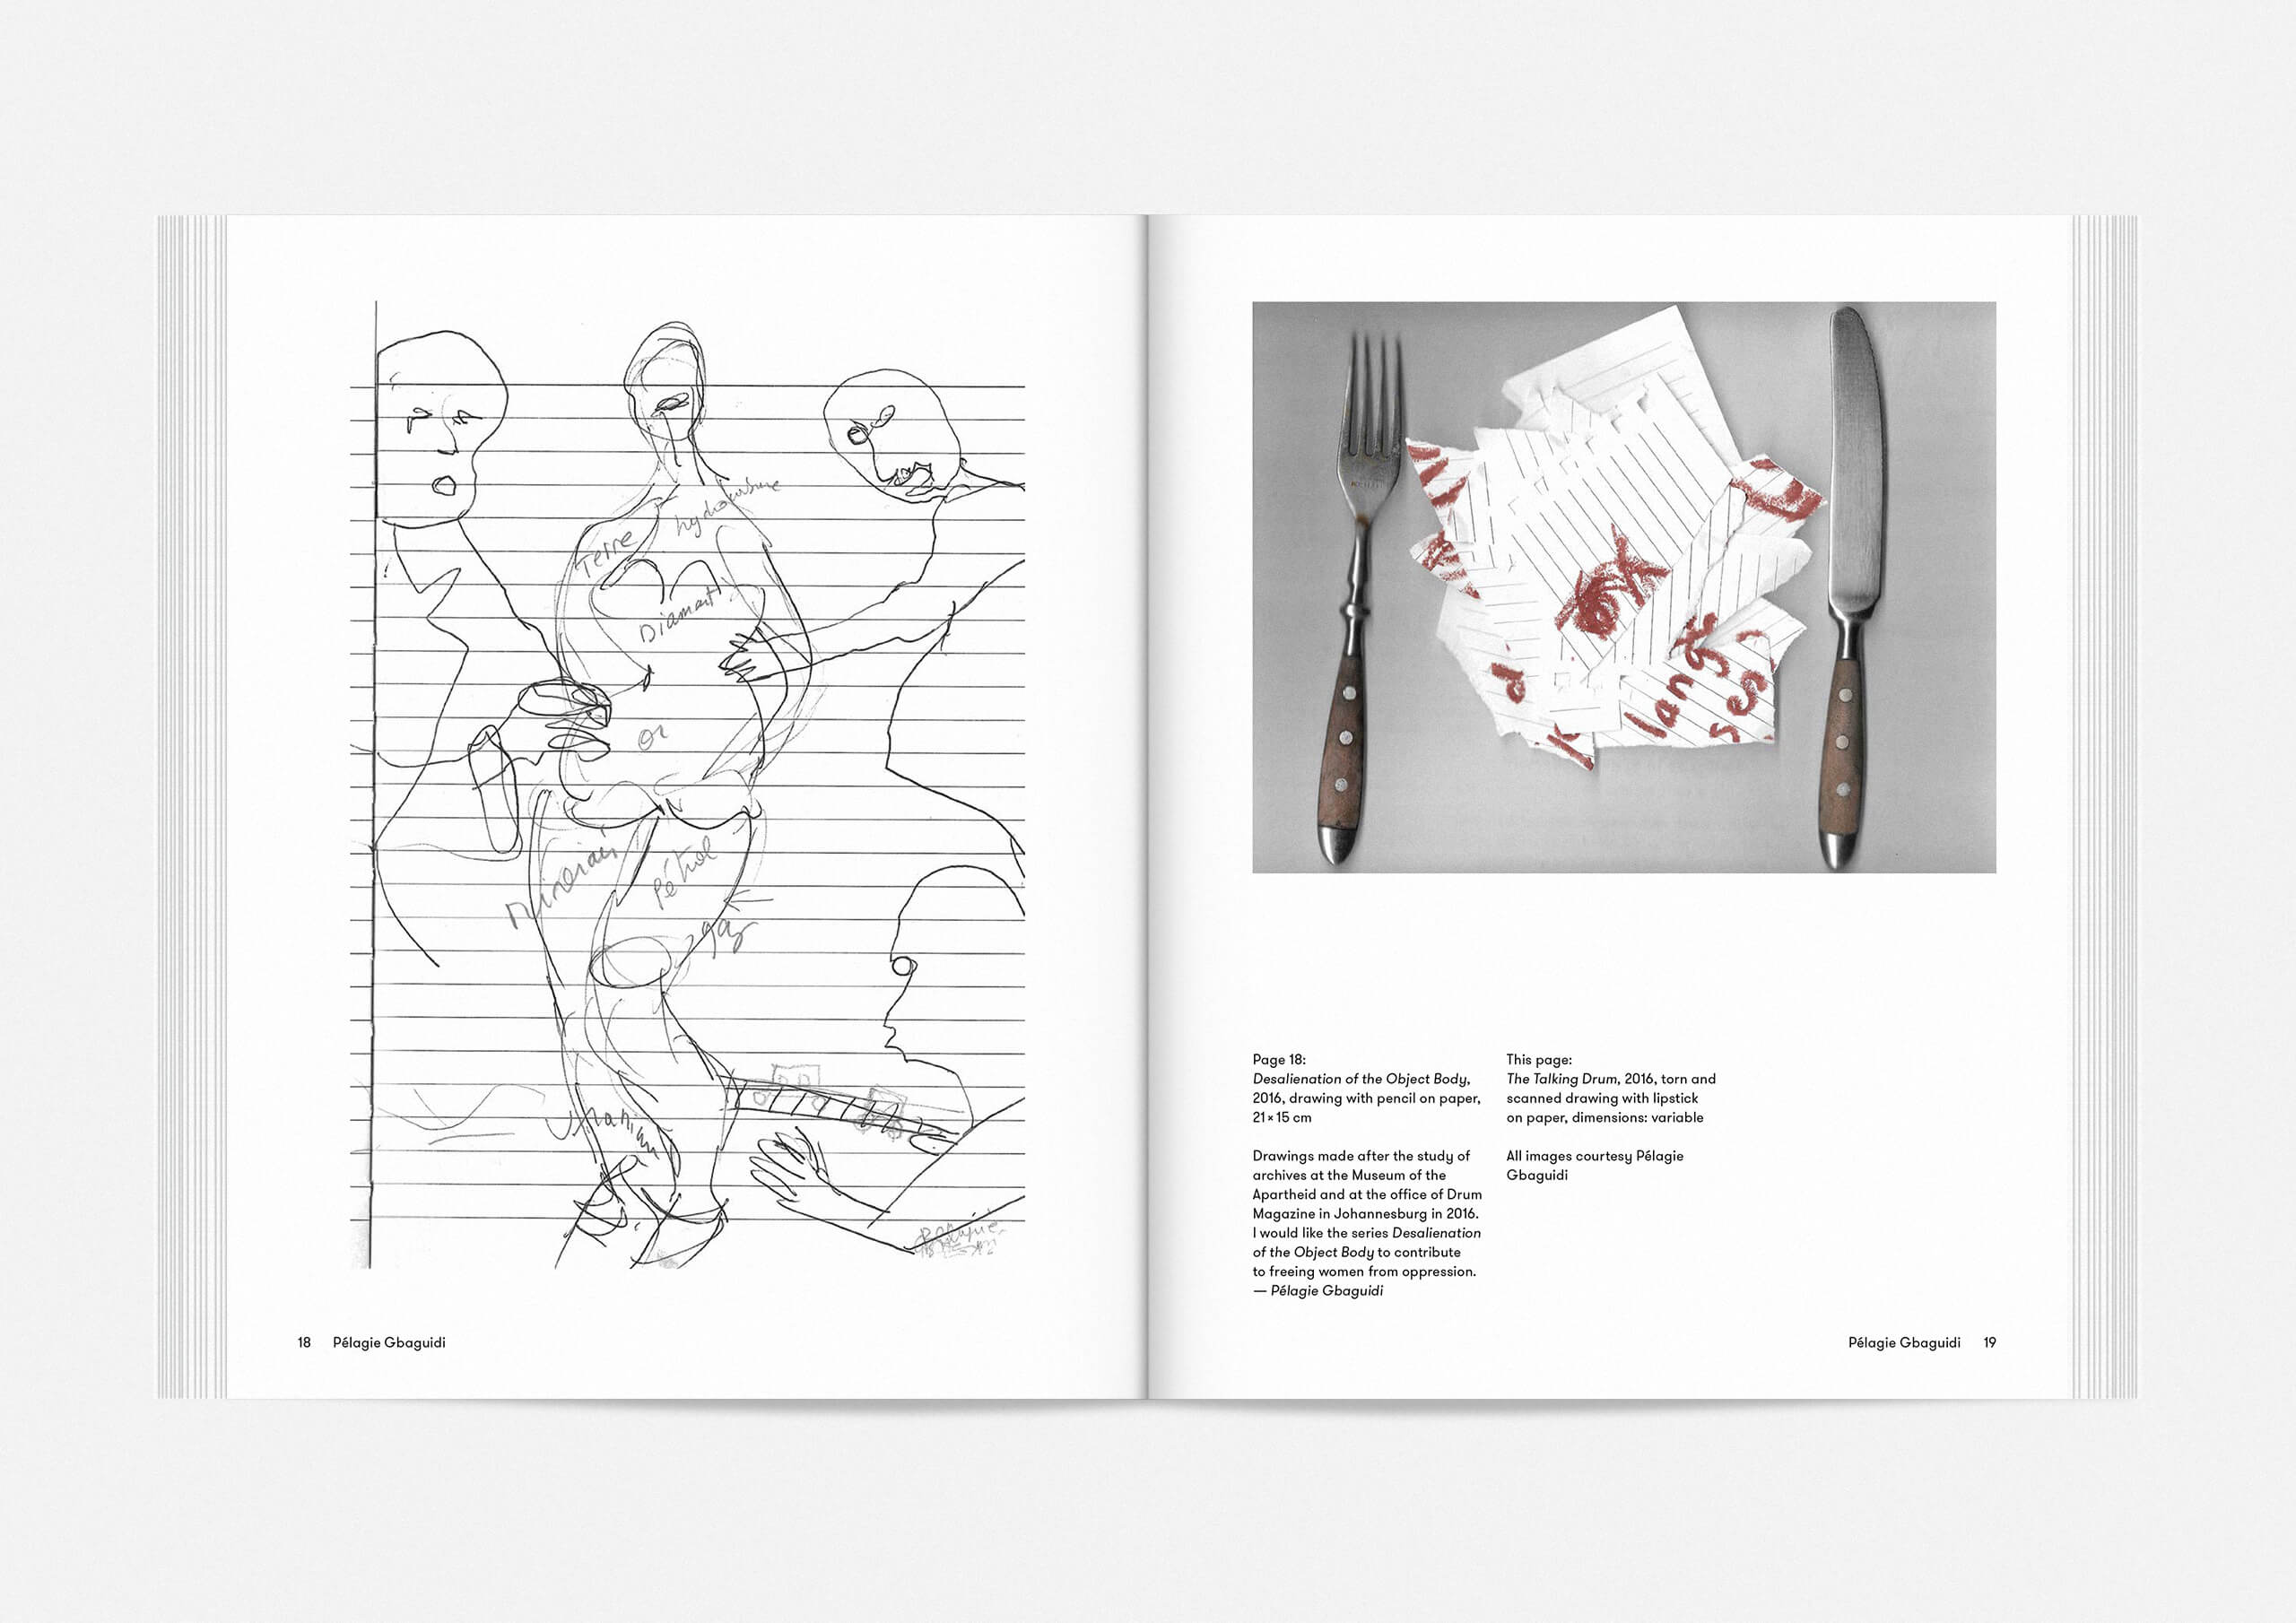 https://neuegestaltung.de/media/pages/clients/protocollum-issue-no-05/544254bd58-1597415144/protocollum-5-page-1819-ng.jpg